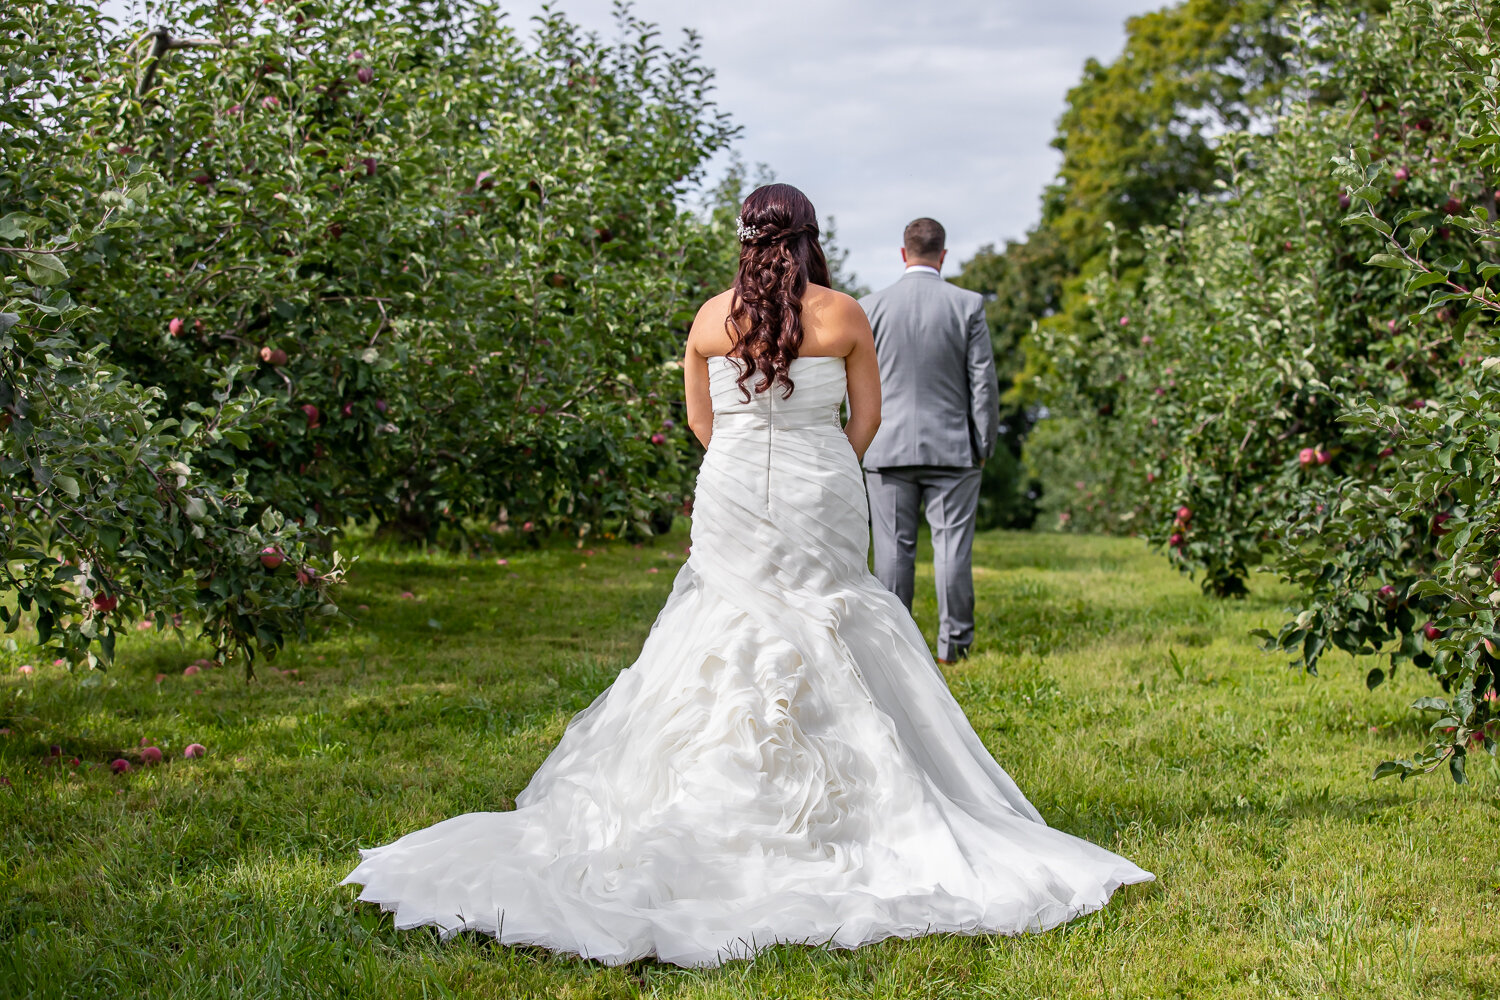 Quonquont-Farm-Wedding-Four-Wings-Fhotography-13.jpg